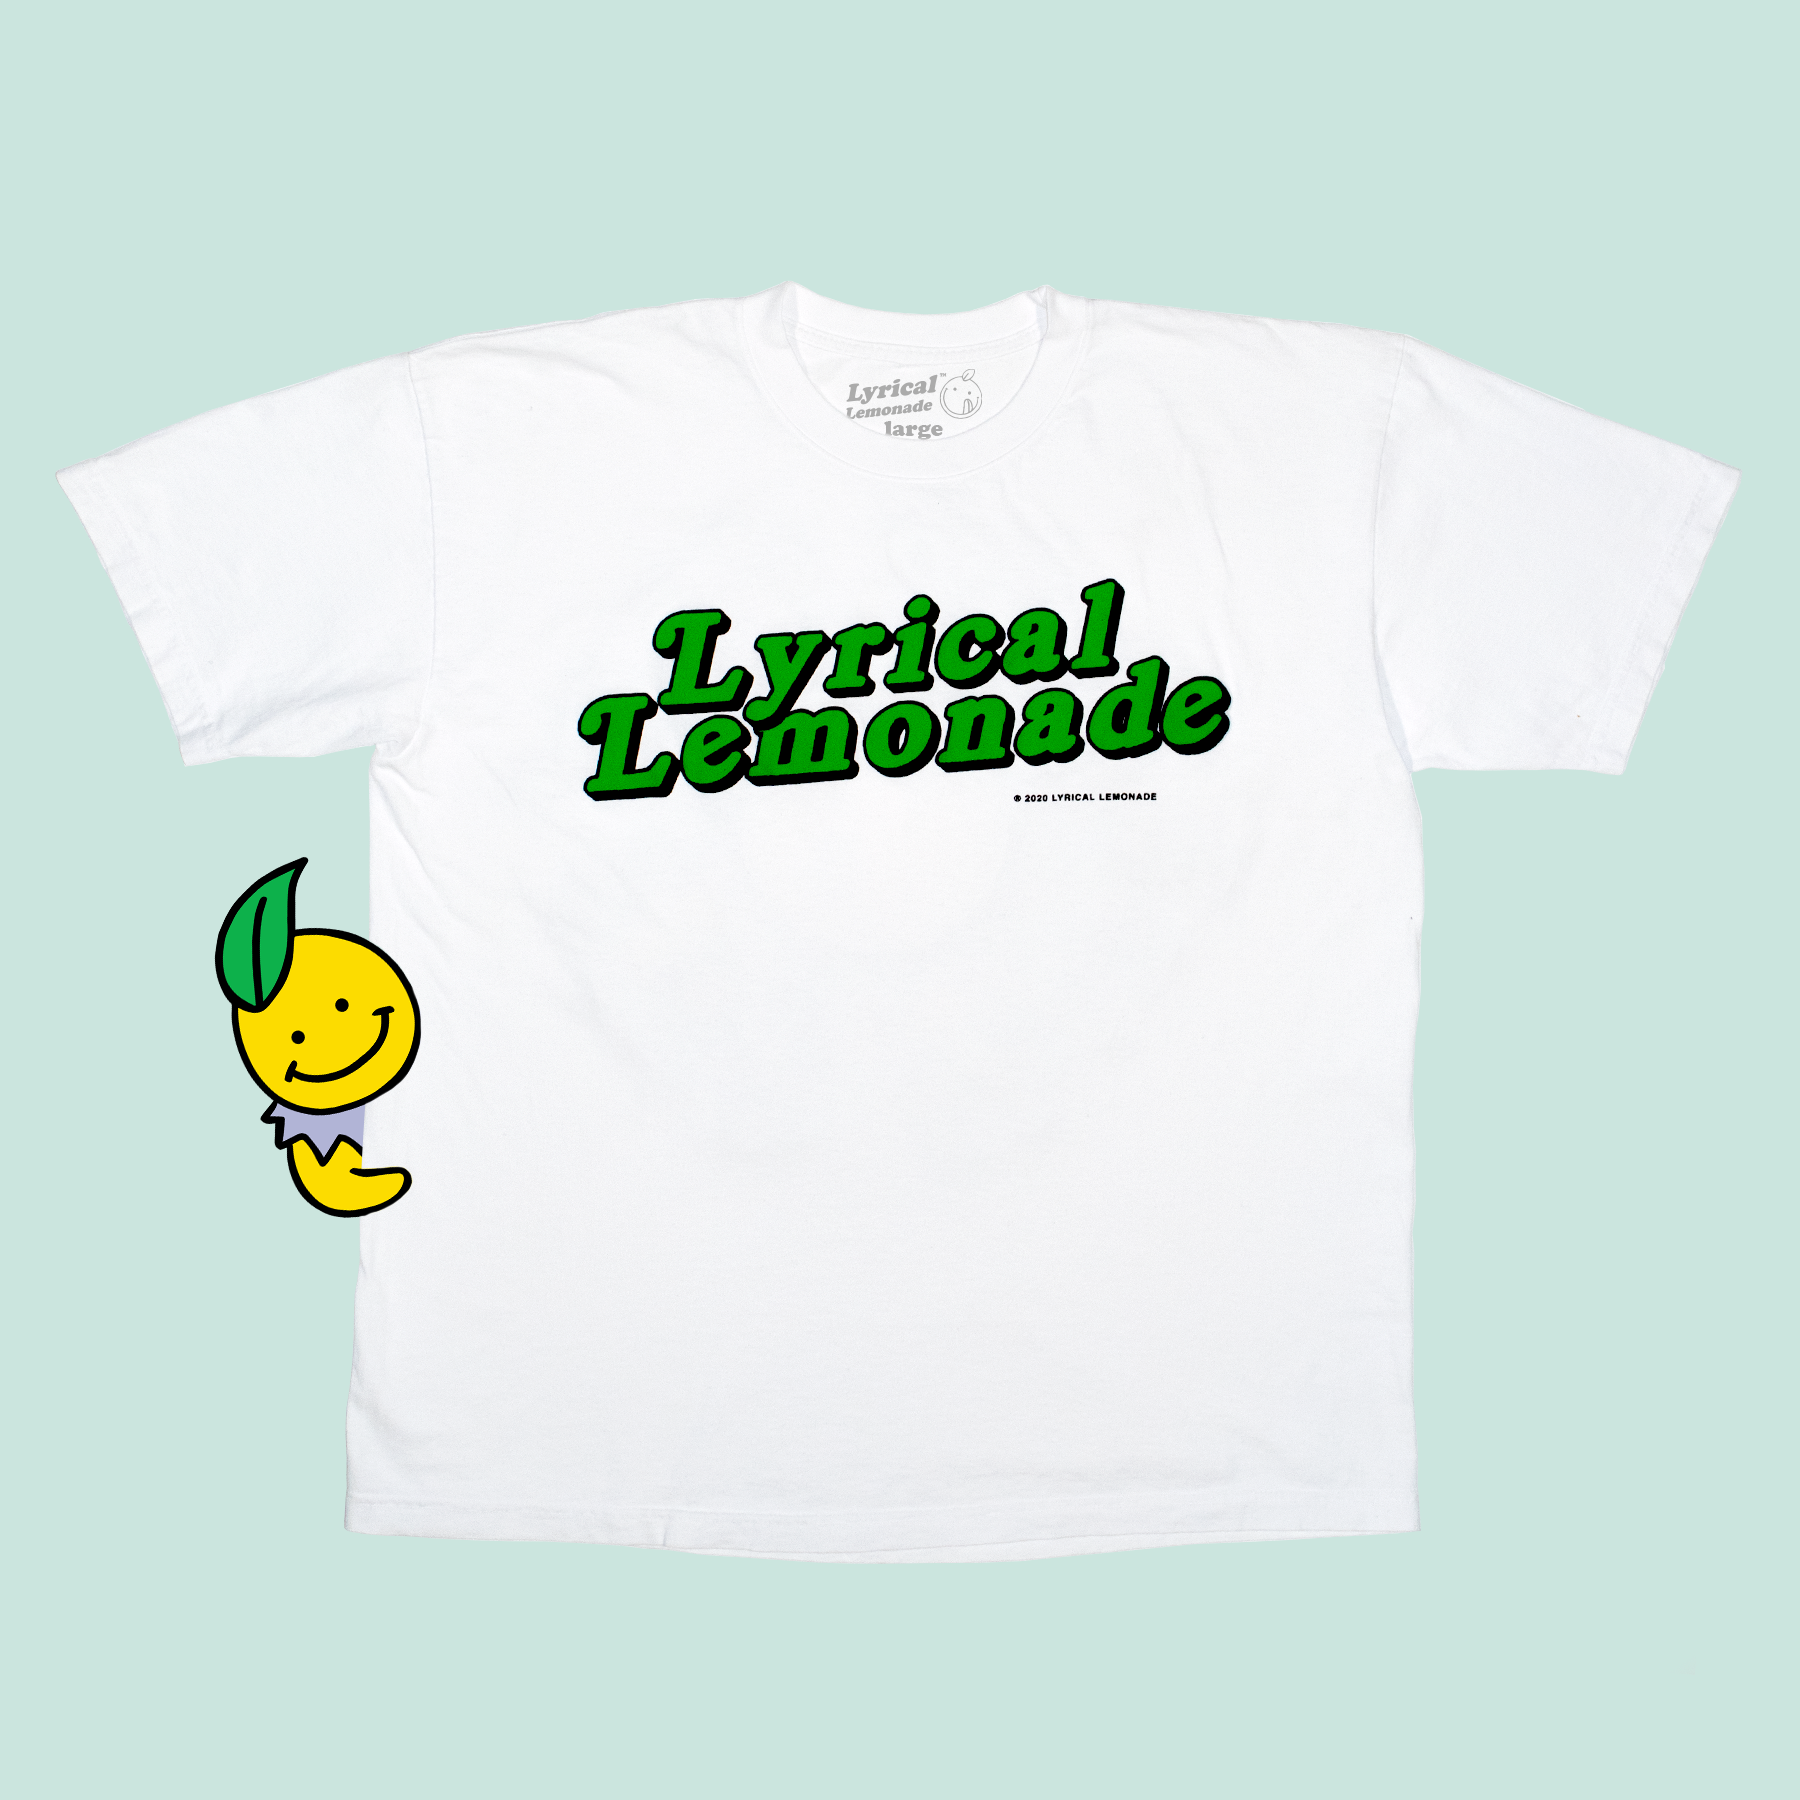 Lenny x Lemon Man Tee